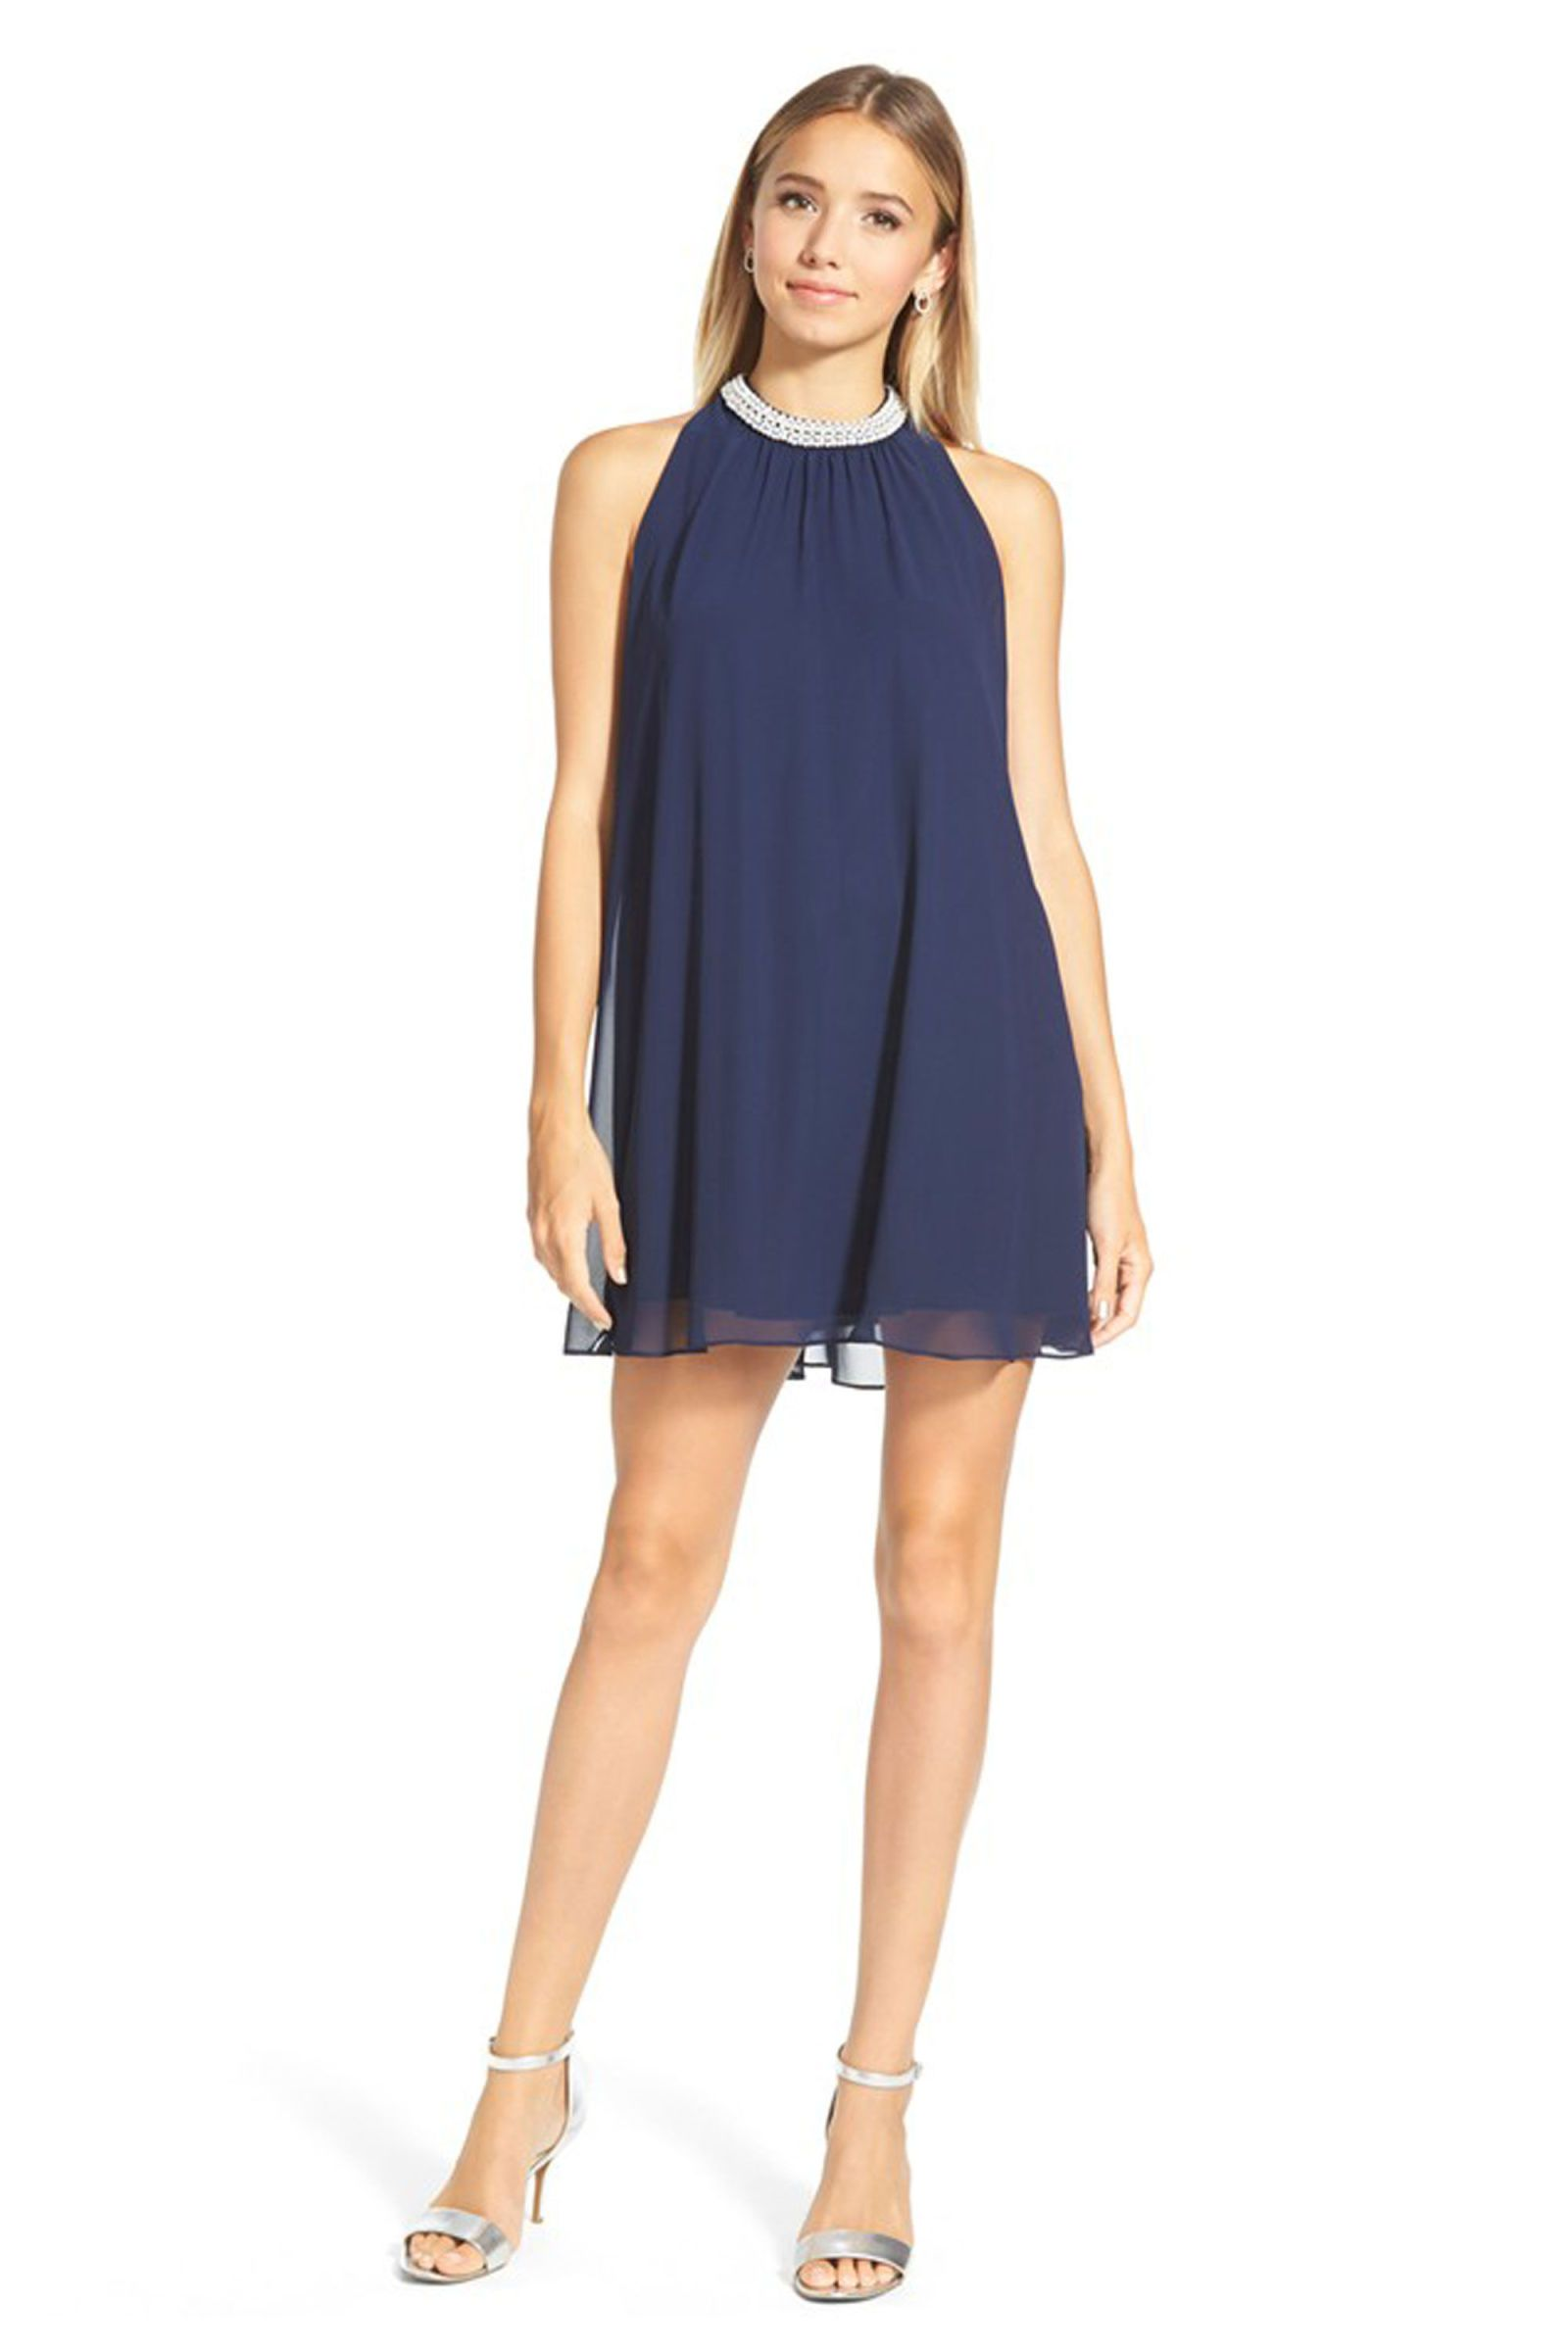 Nordstrom Homecoming Dresses – Dresses for Woman